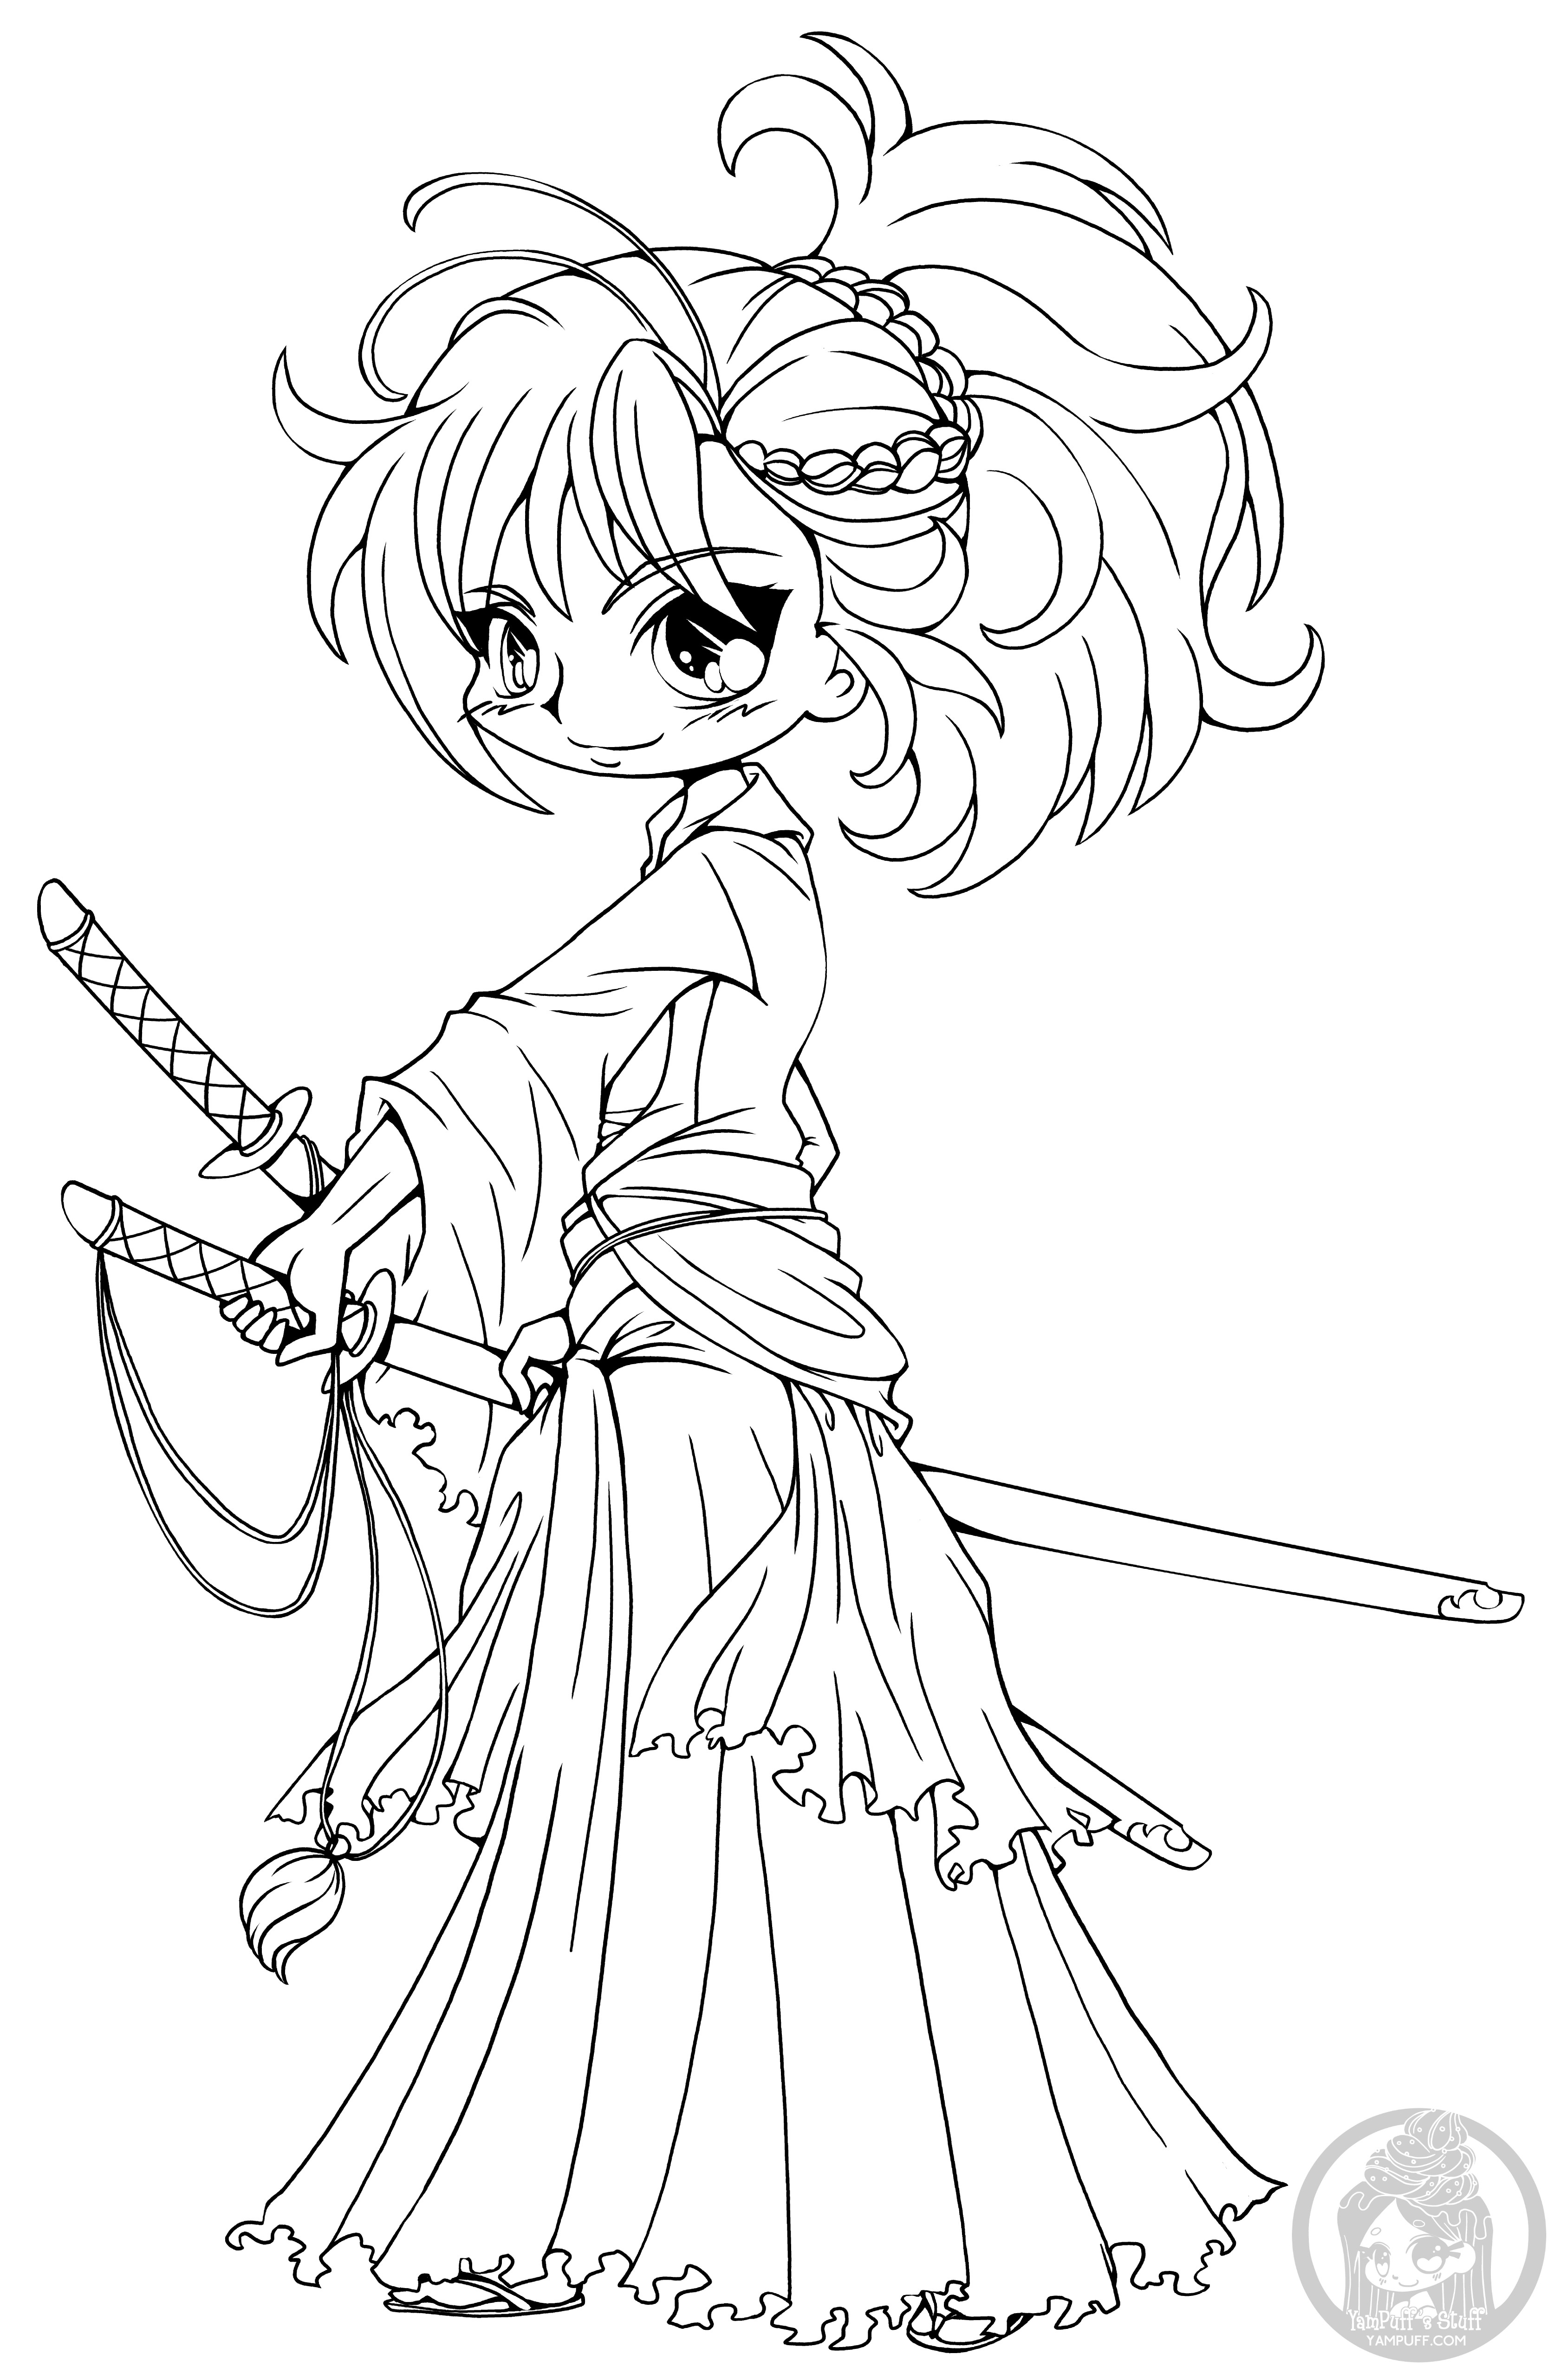 Yampuff Coloring Pages  Fanart Free Chibi Colouring Pages • YamPuff s Stuff